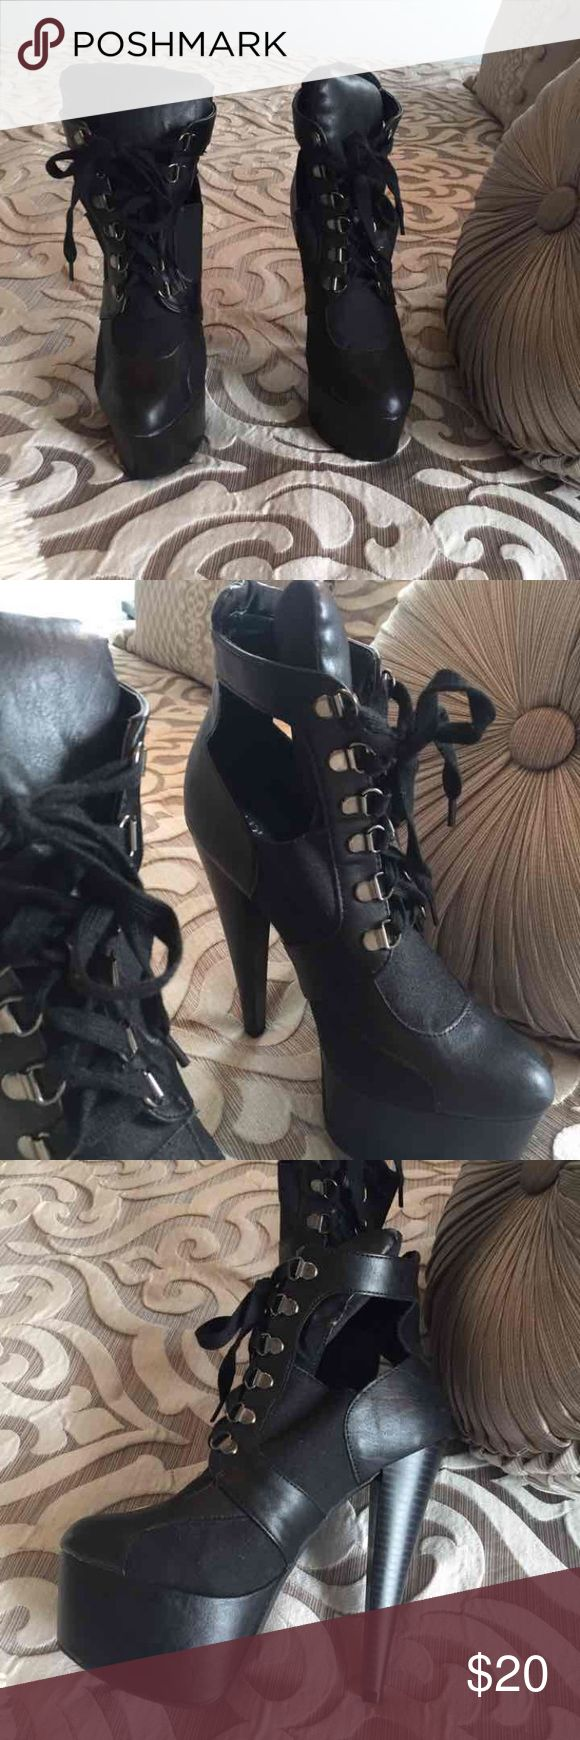 High Heel Stiletto Boots High Heel Stiletto Boots from Shoe Dazzle. Size 8, never worn Shoe Dazzle Shoes Lace Up Boots